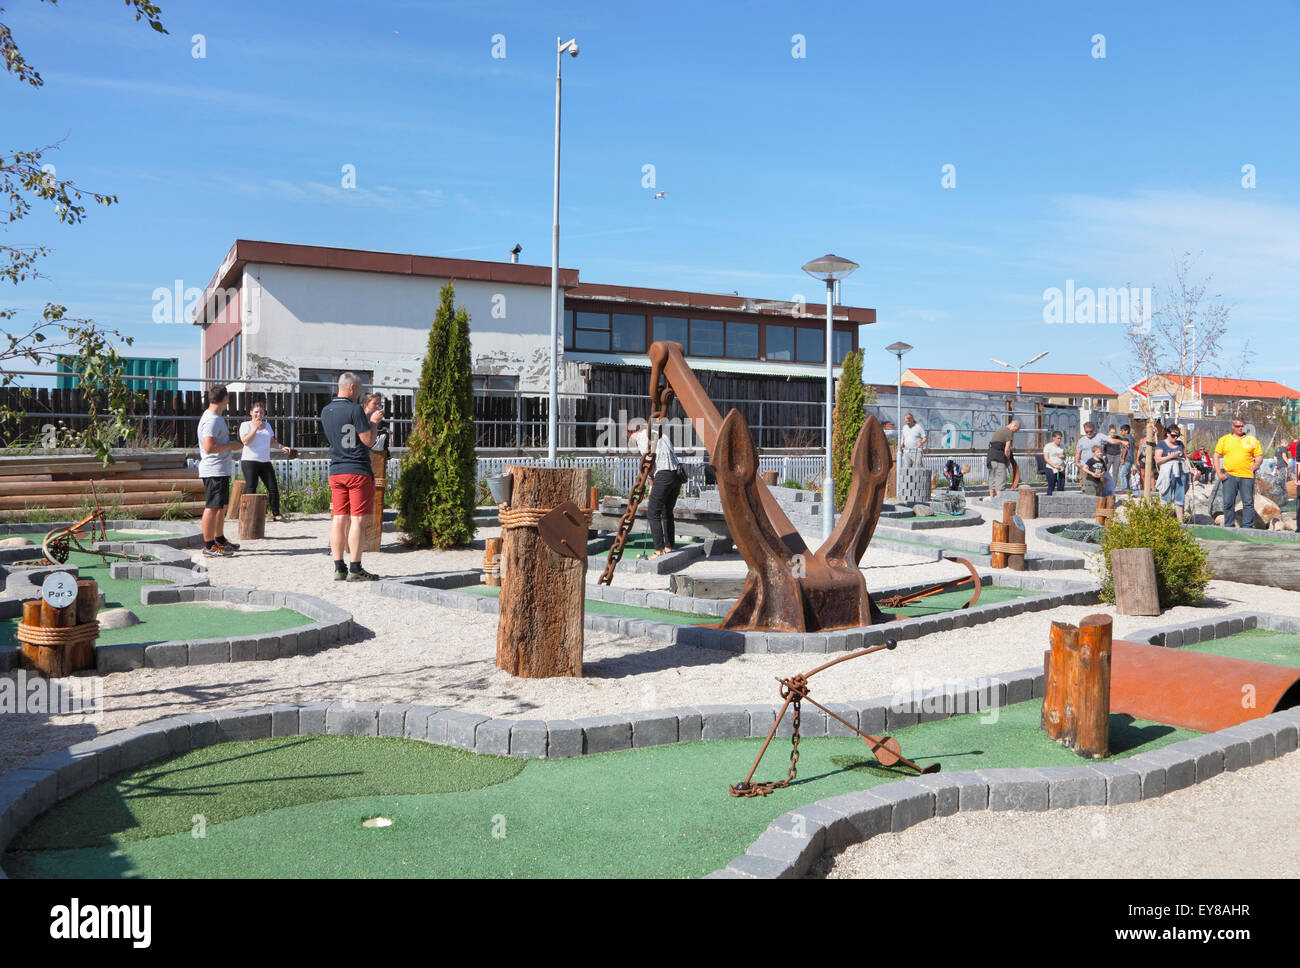 Miniature golf at Hundested Harbour  in North Sealand, Denmark. - Stock Image